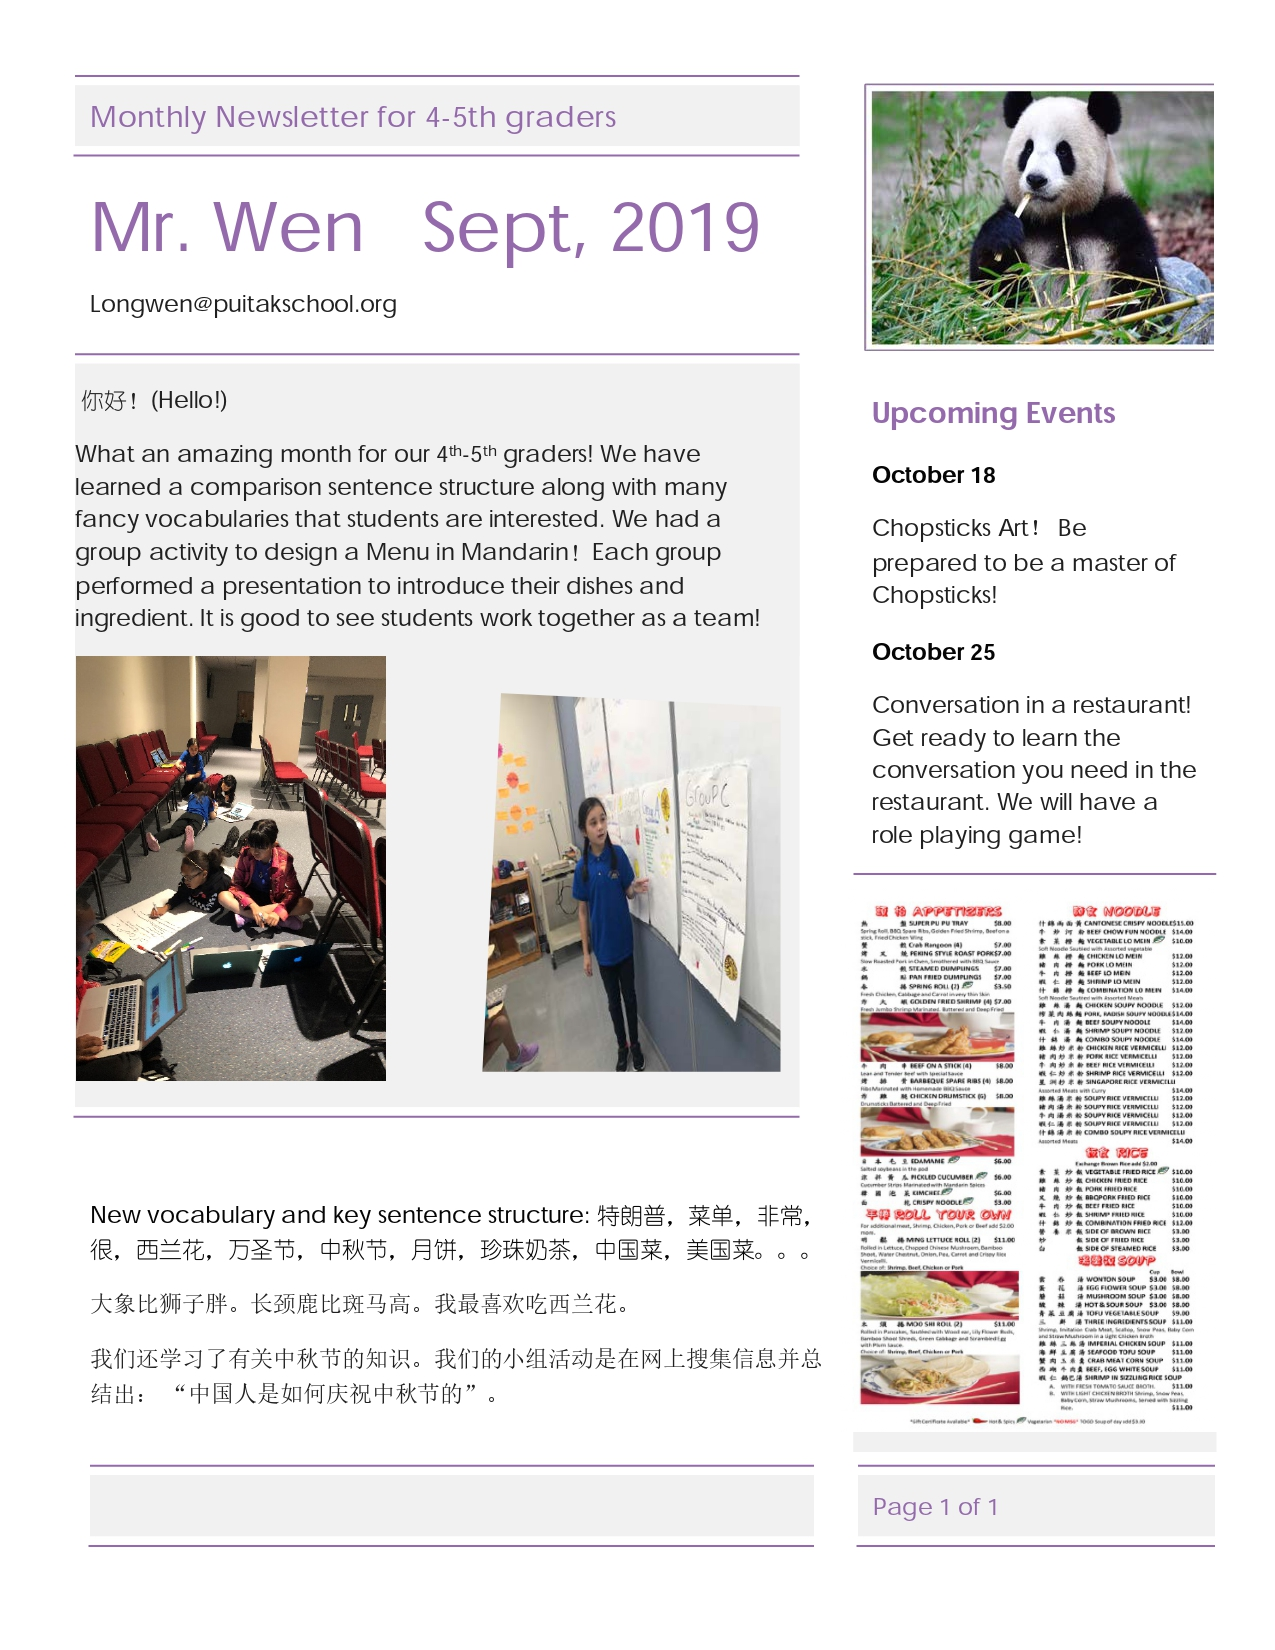 JackNewsletterSeptember2019 for 4th-5th